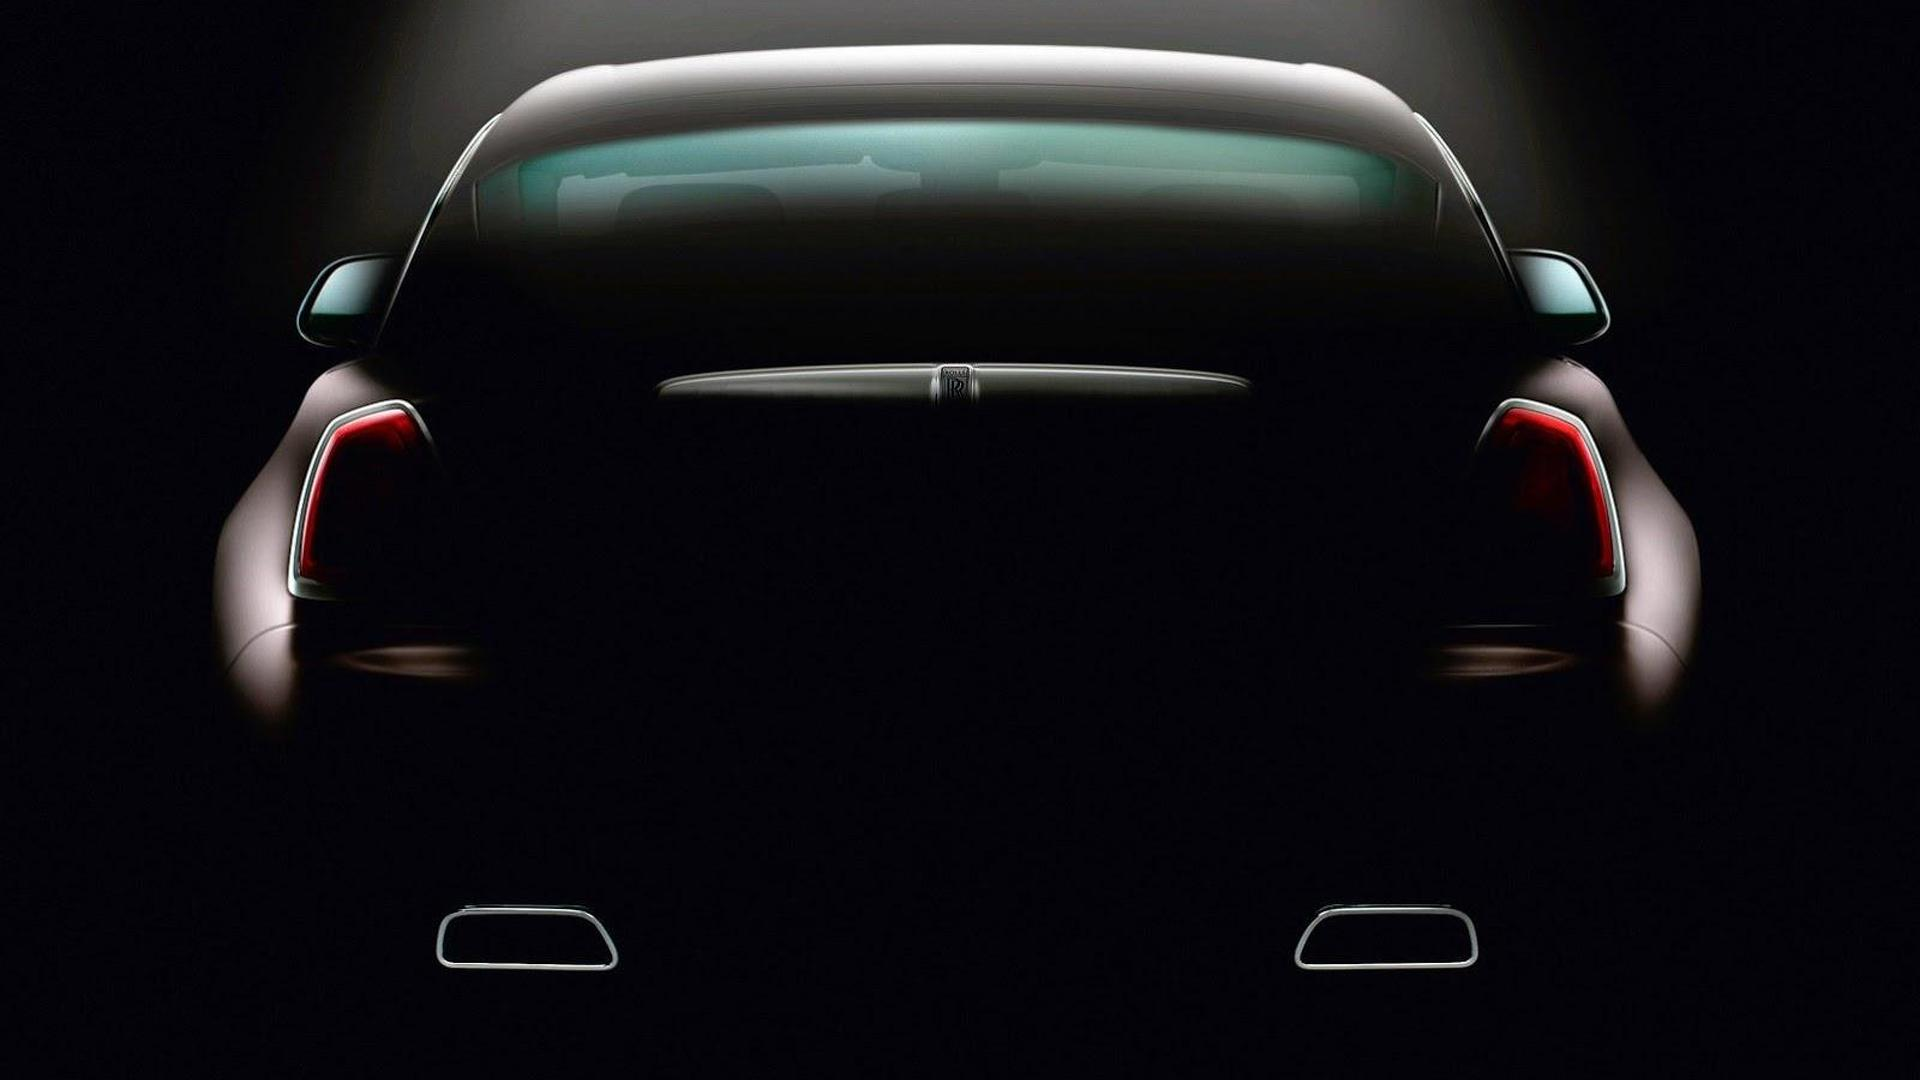 Rolls-Royce Wraith (Ghost Coupe) teased once again